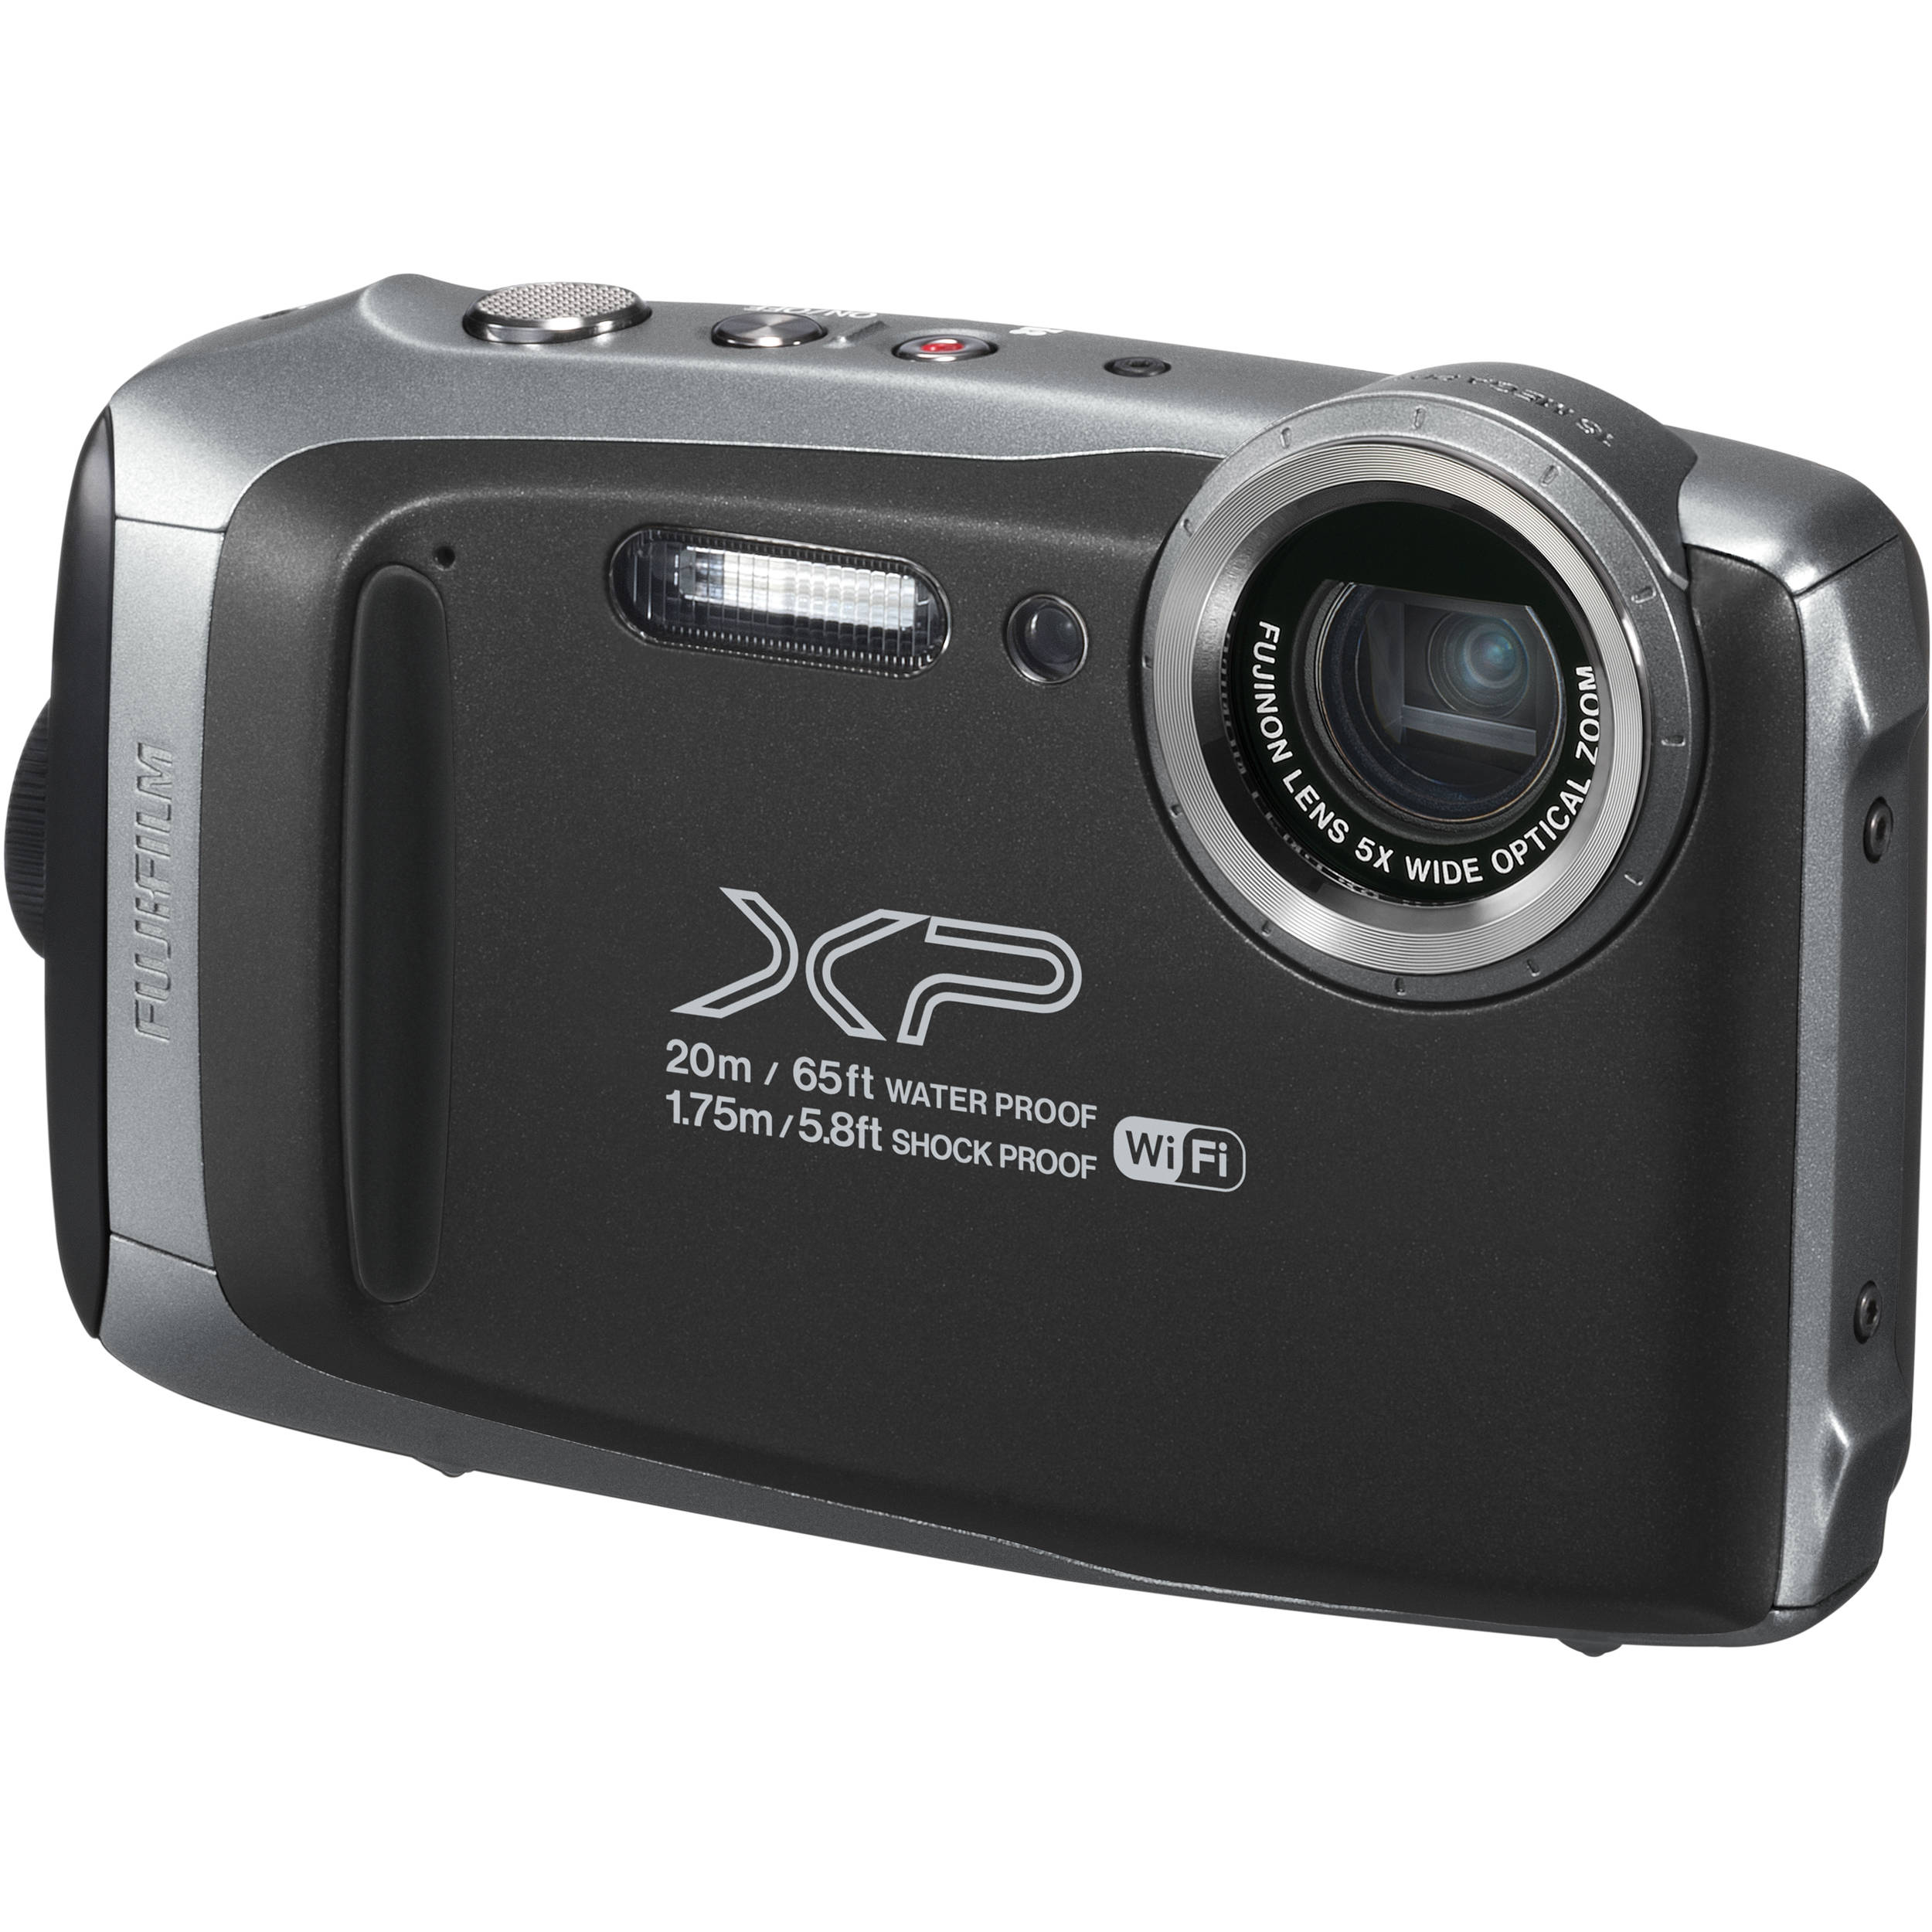 Image of Fujifilm Finepix XP130 Digital Cameras - Silver